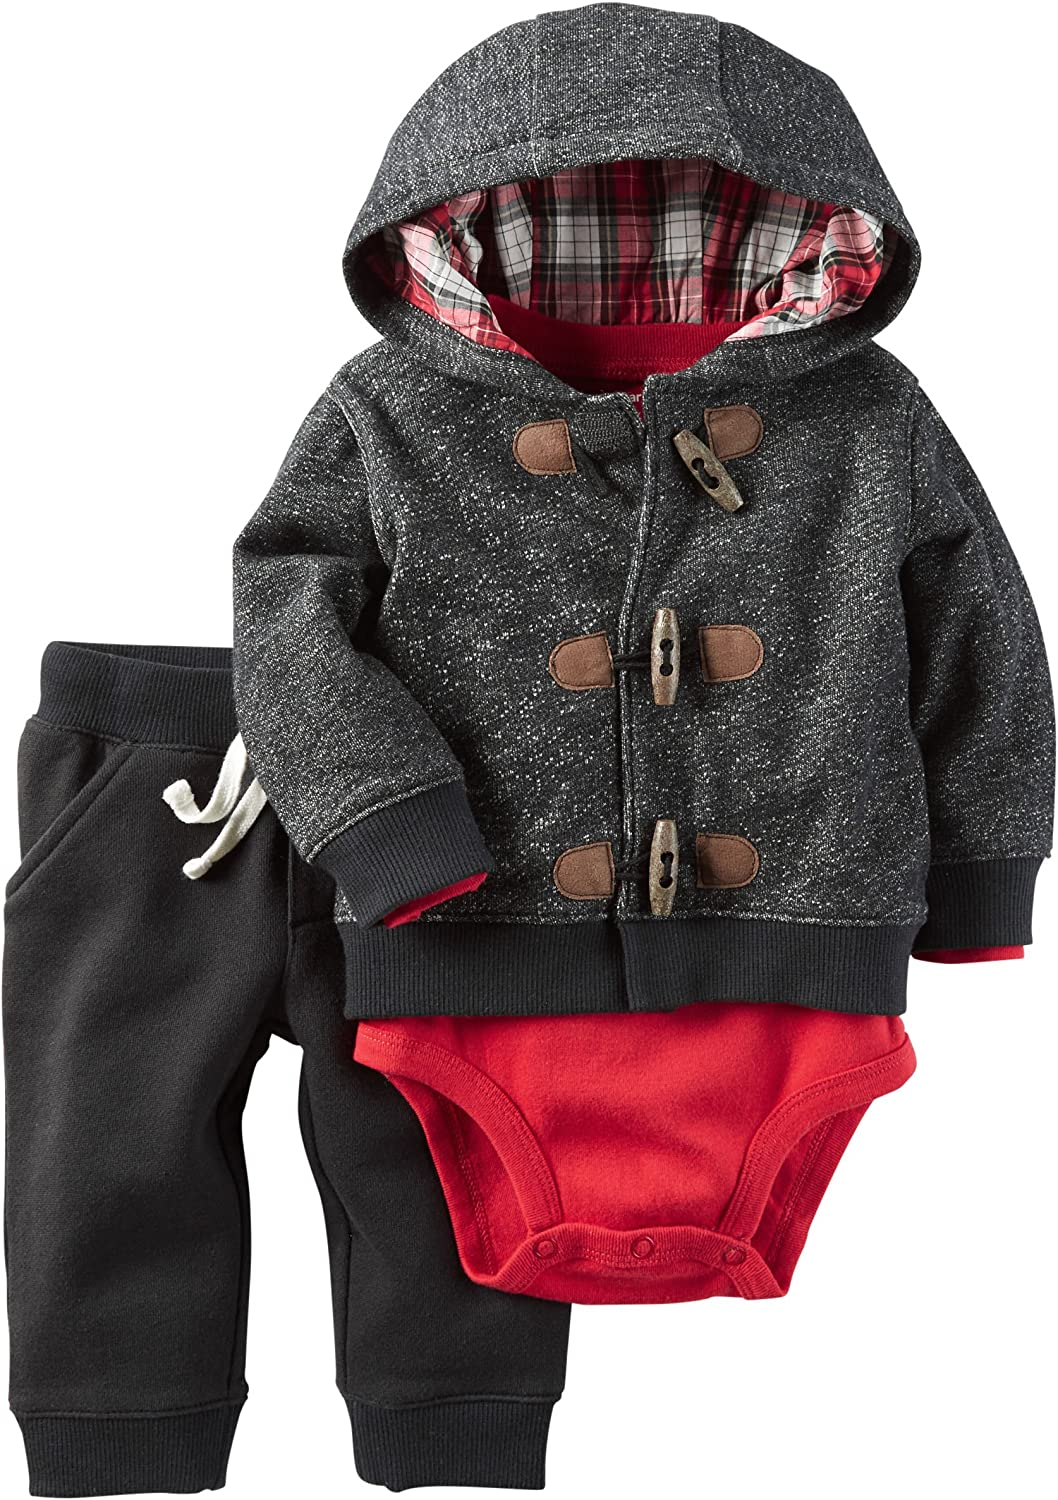 Carter's Baby Boys' 3 Pc Sets 127g198